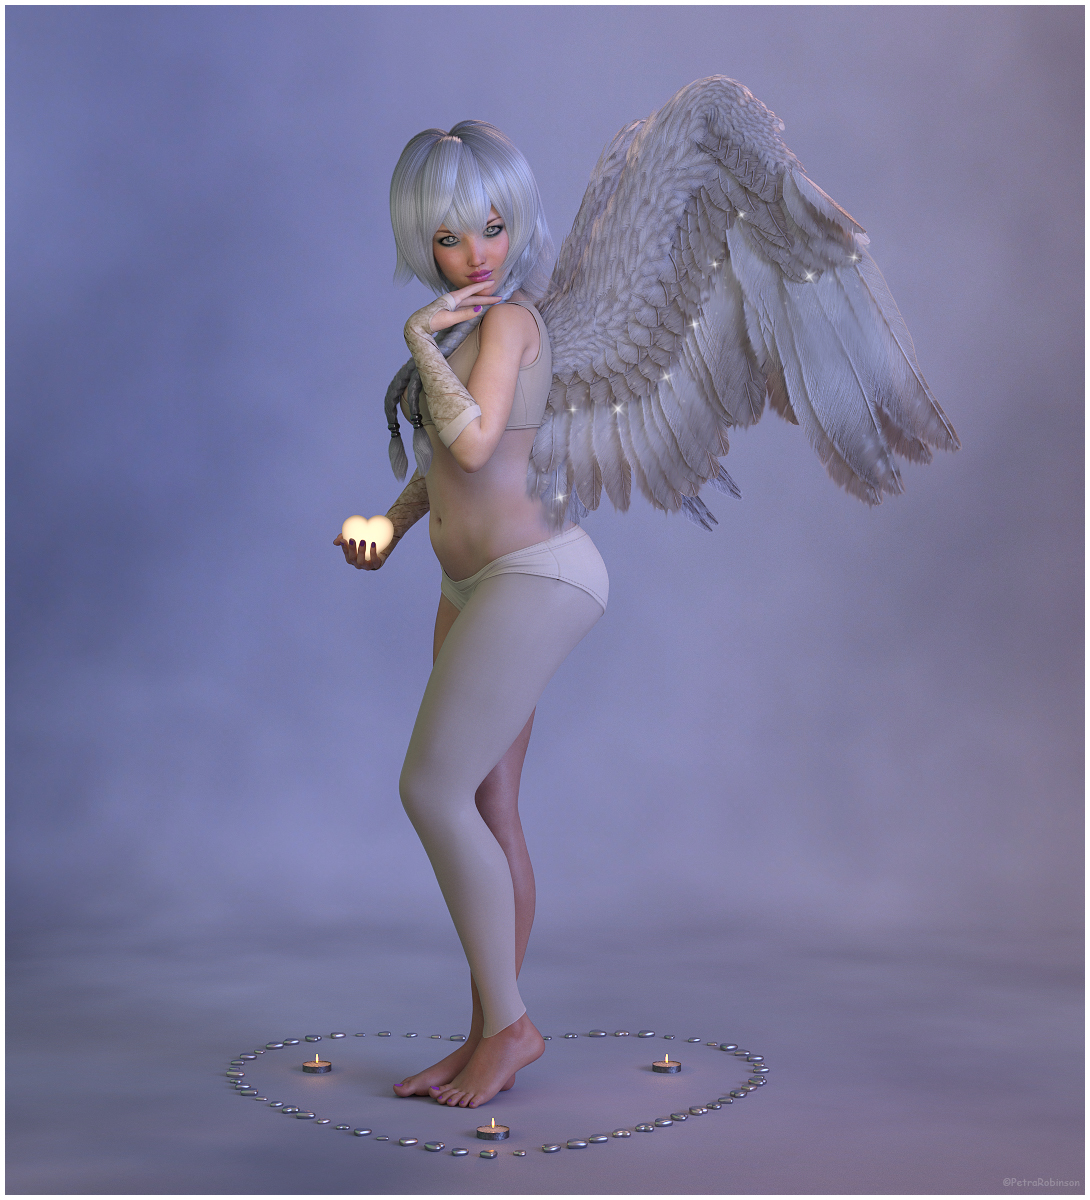 Wings of an Angel